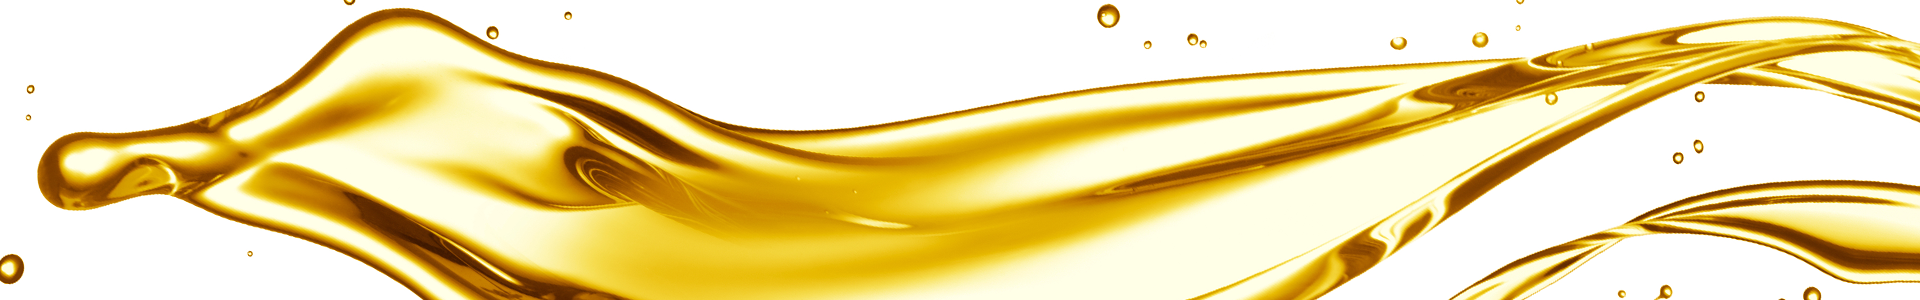 Banner-FuelTypes_2